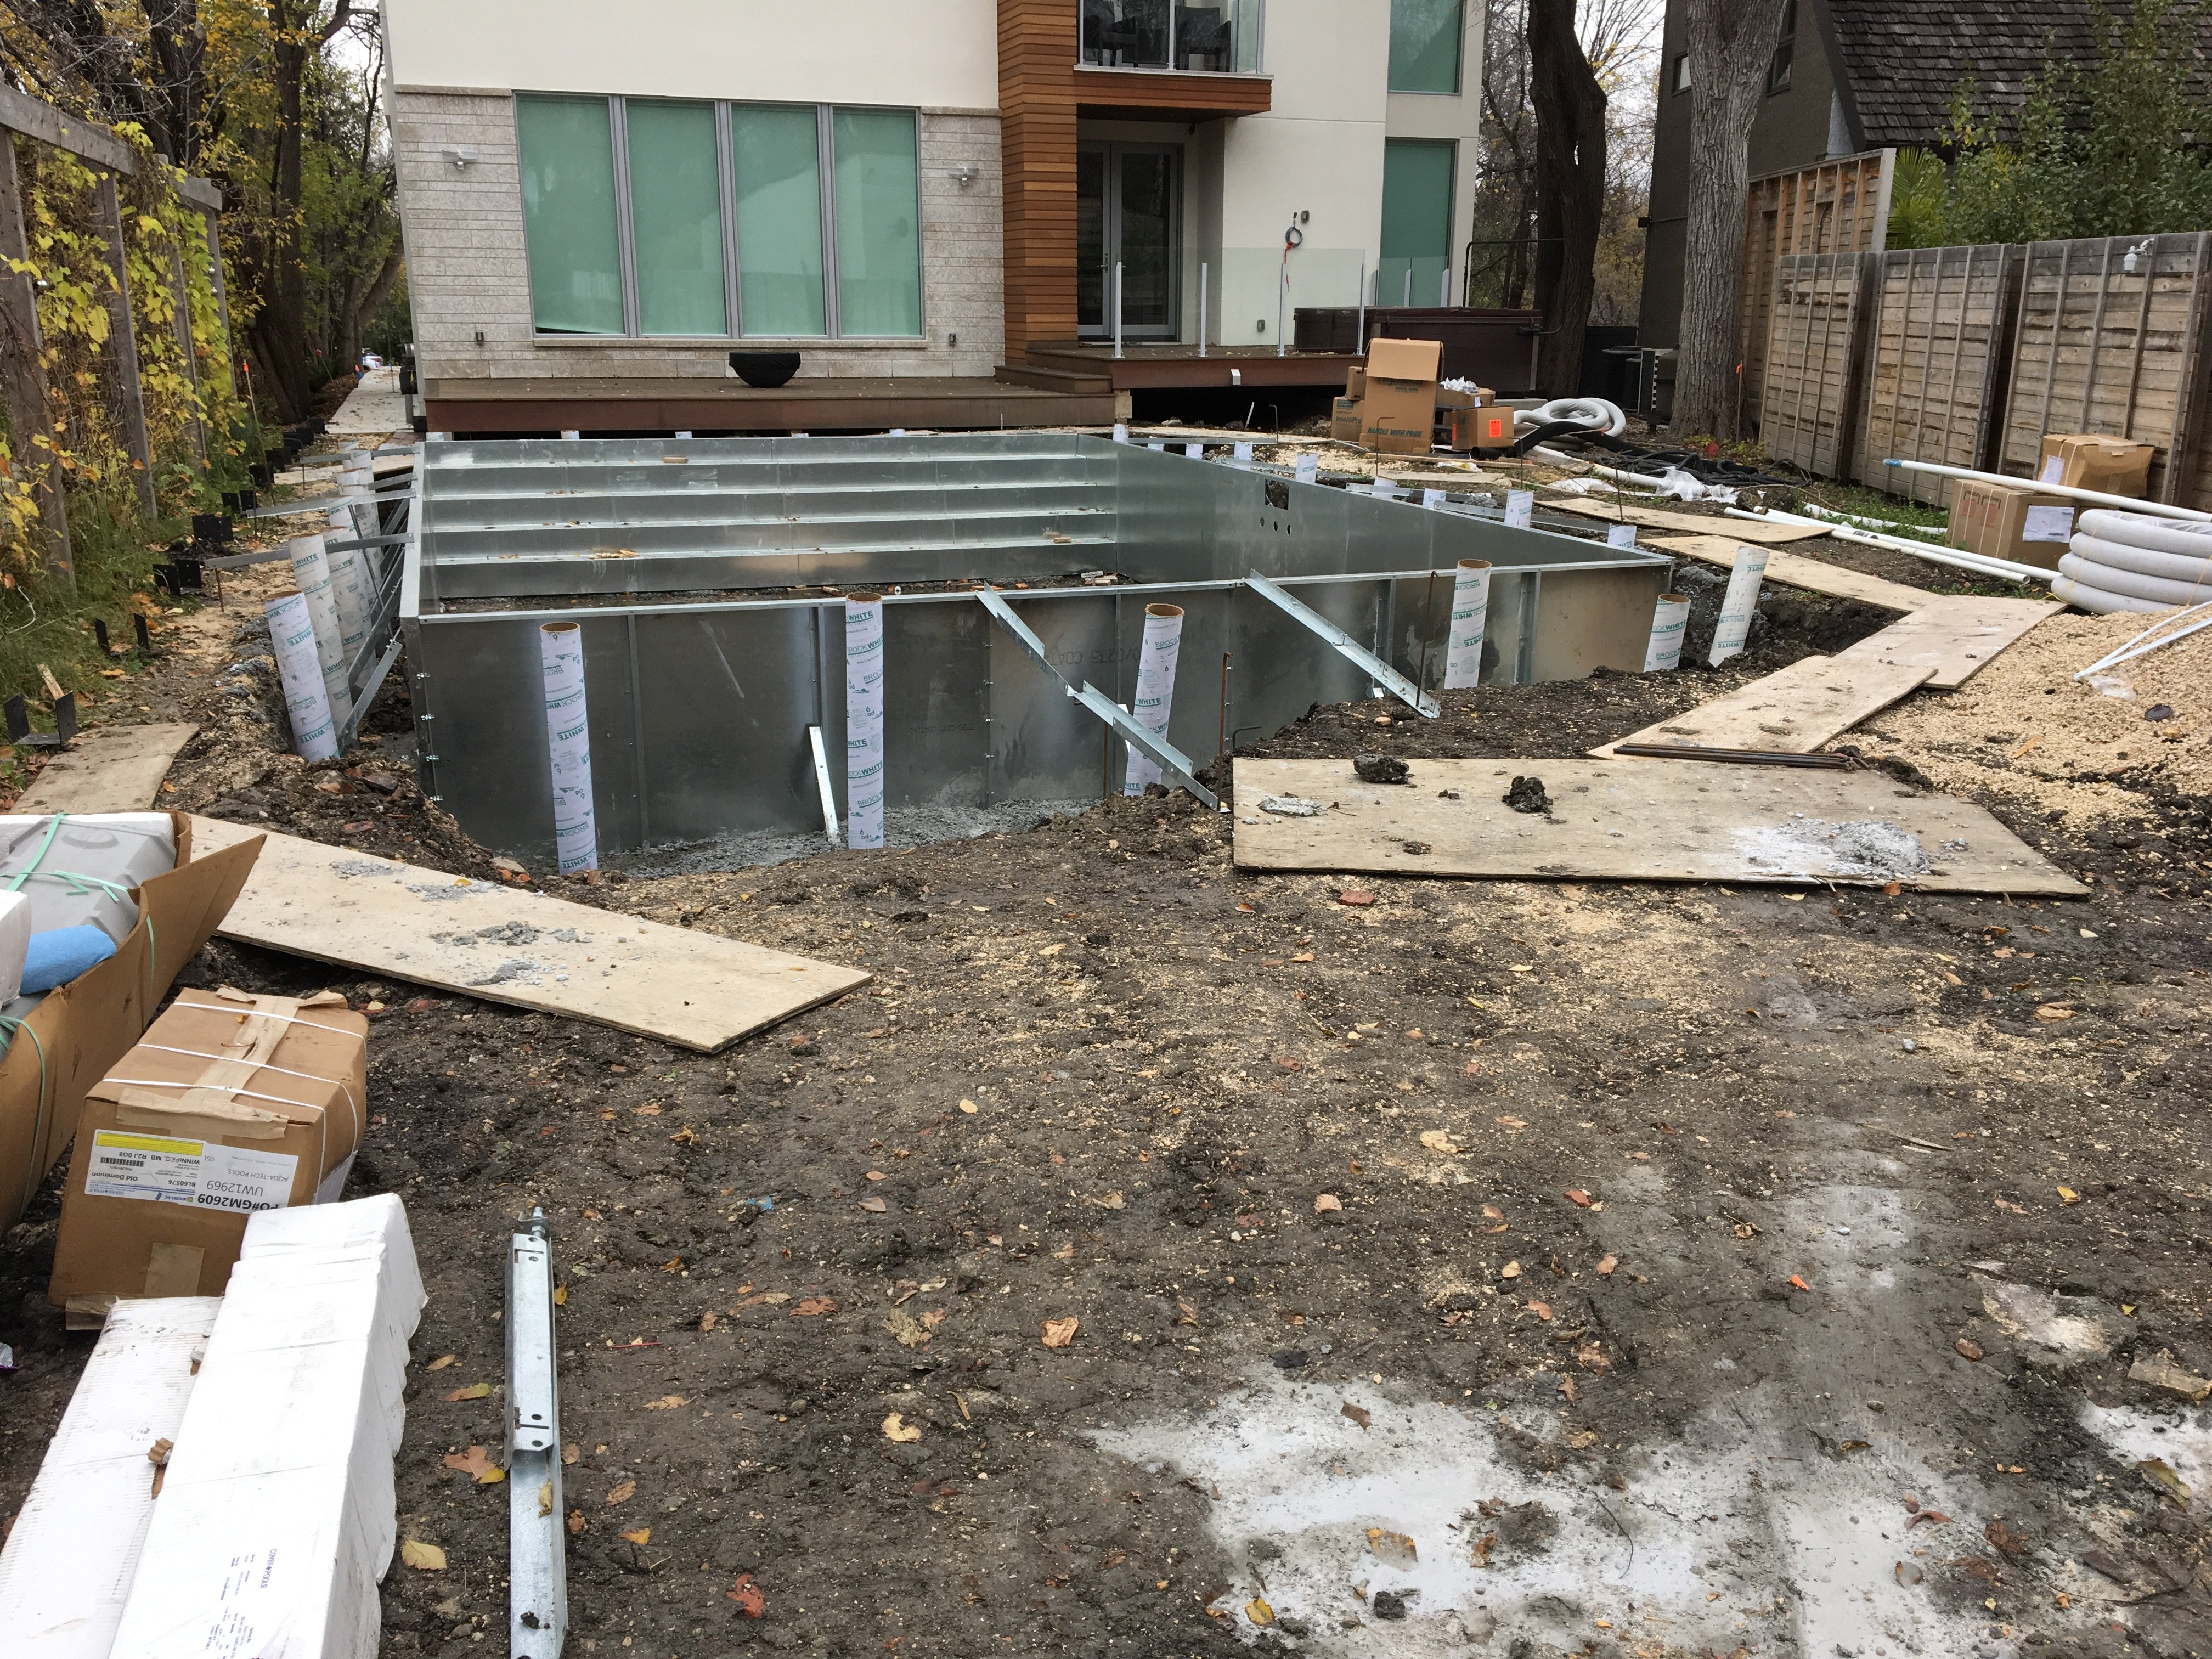 Residential Pool Construction In Winnipeg  Aquatech. Garden Ridge Patio Umbrellas. Landscape Patio Software. Garden Patio Canopy Uk. Sutton Collection Patio Furniture. Patio Furniture Tropitone. Plastic Outdoor Furniture Modern. Patio Table And Chairs Rattan. Deck Or Patio First